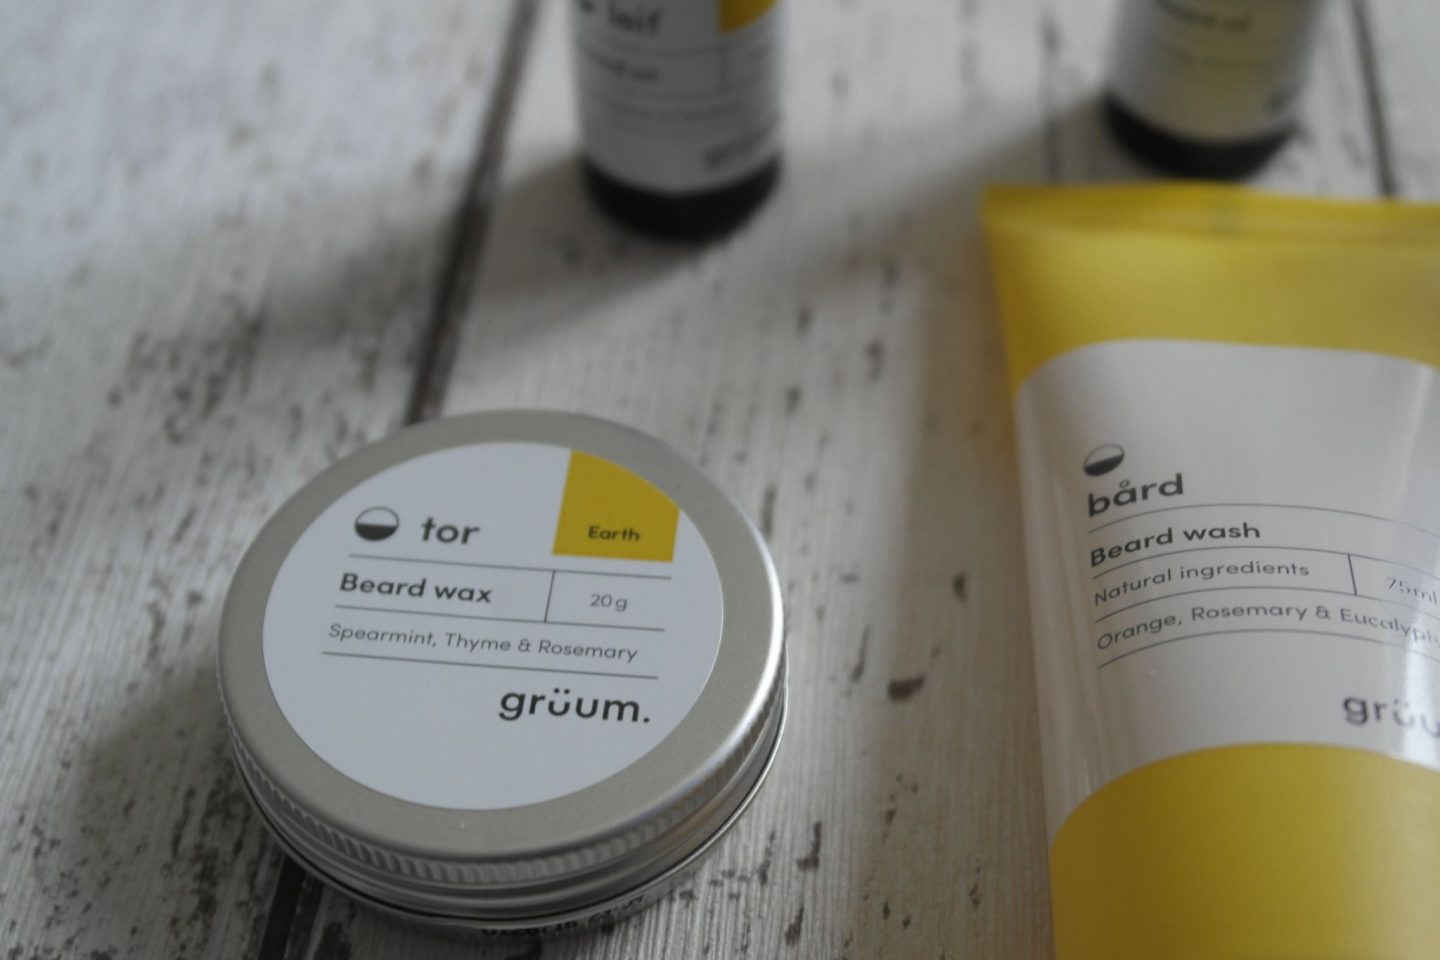 Gruum products